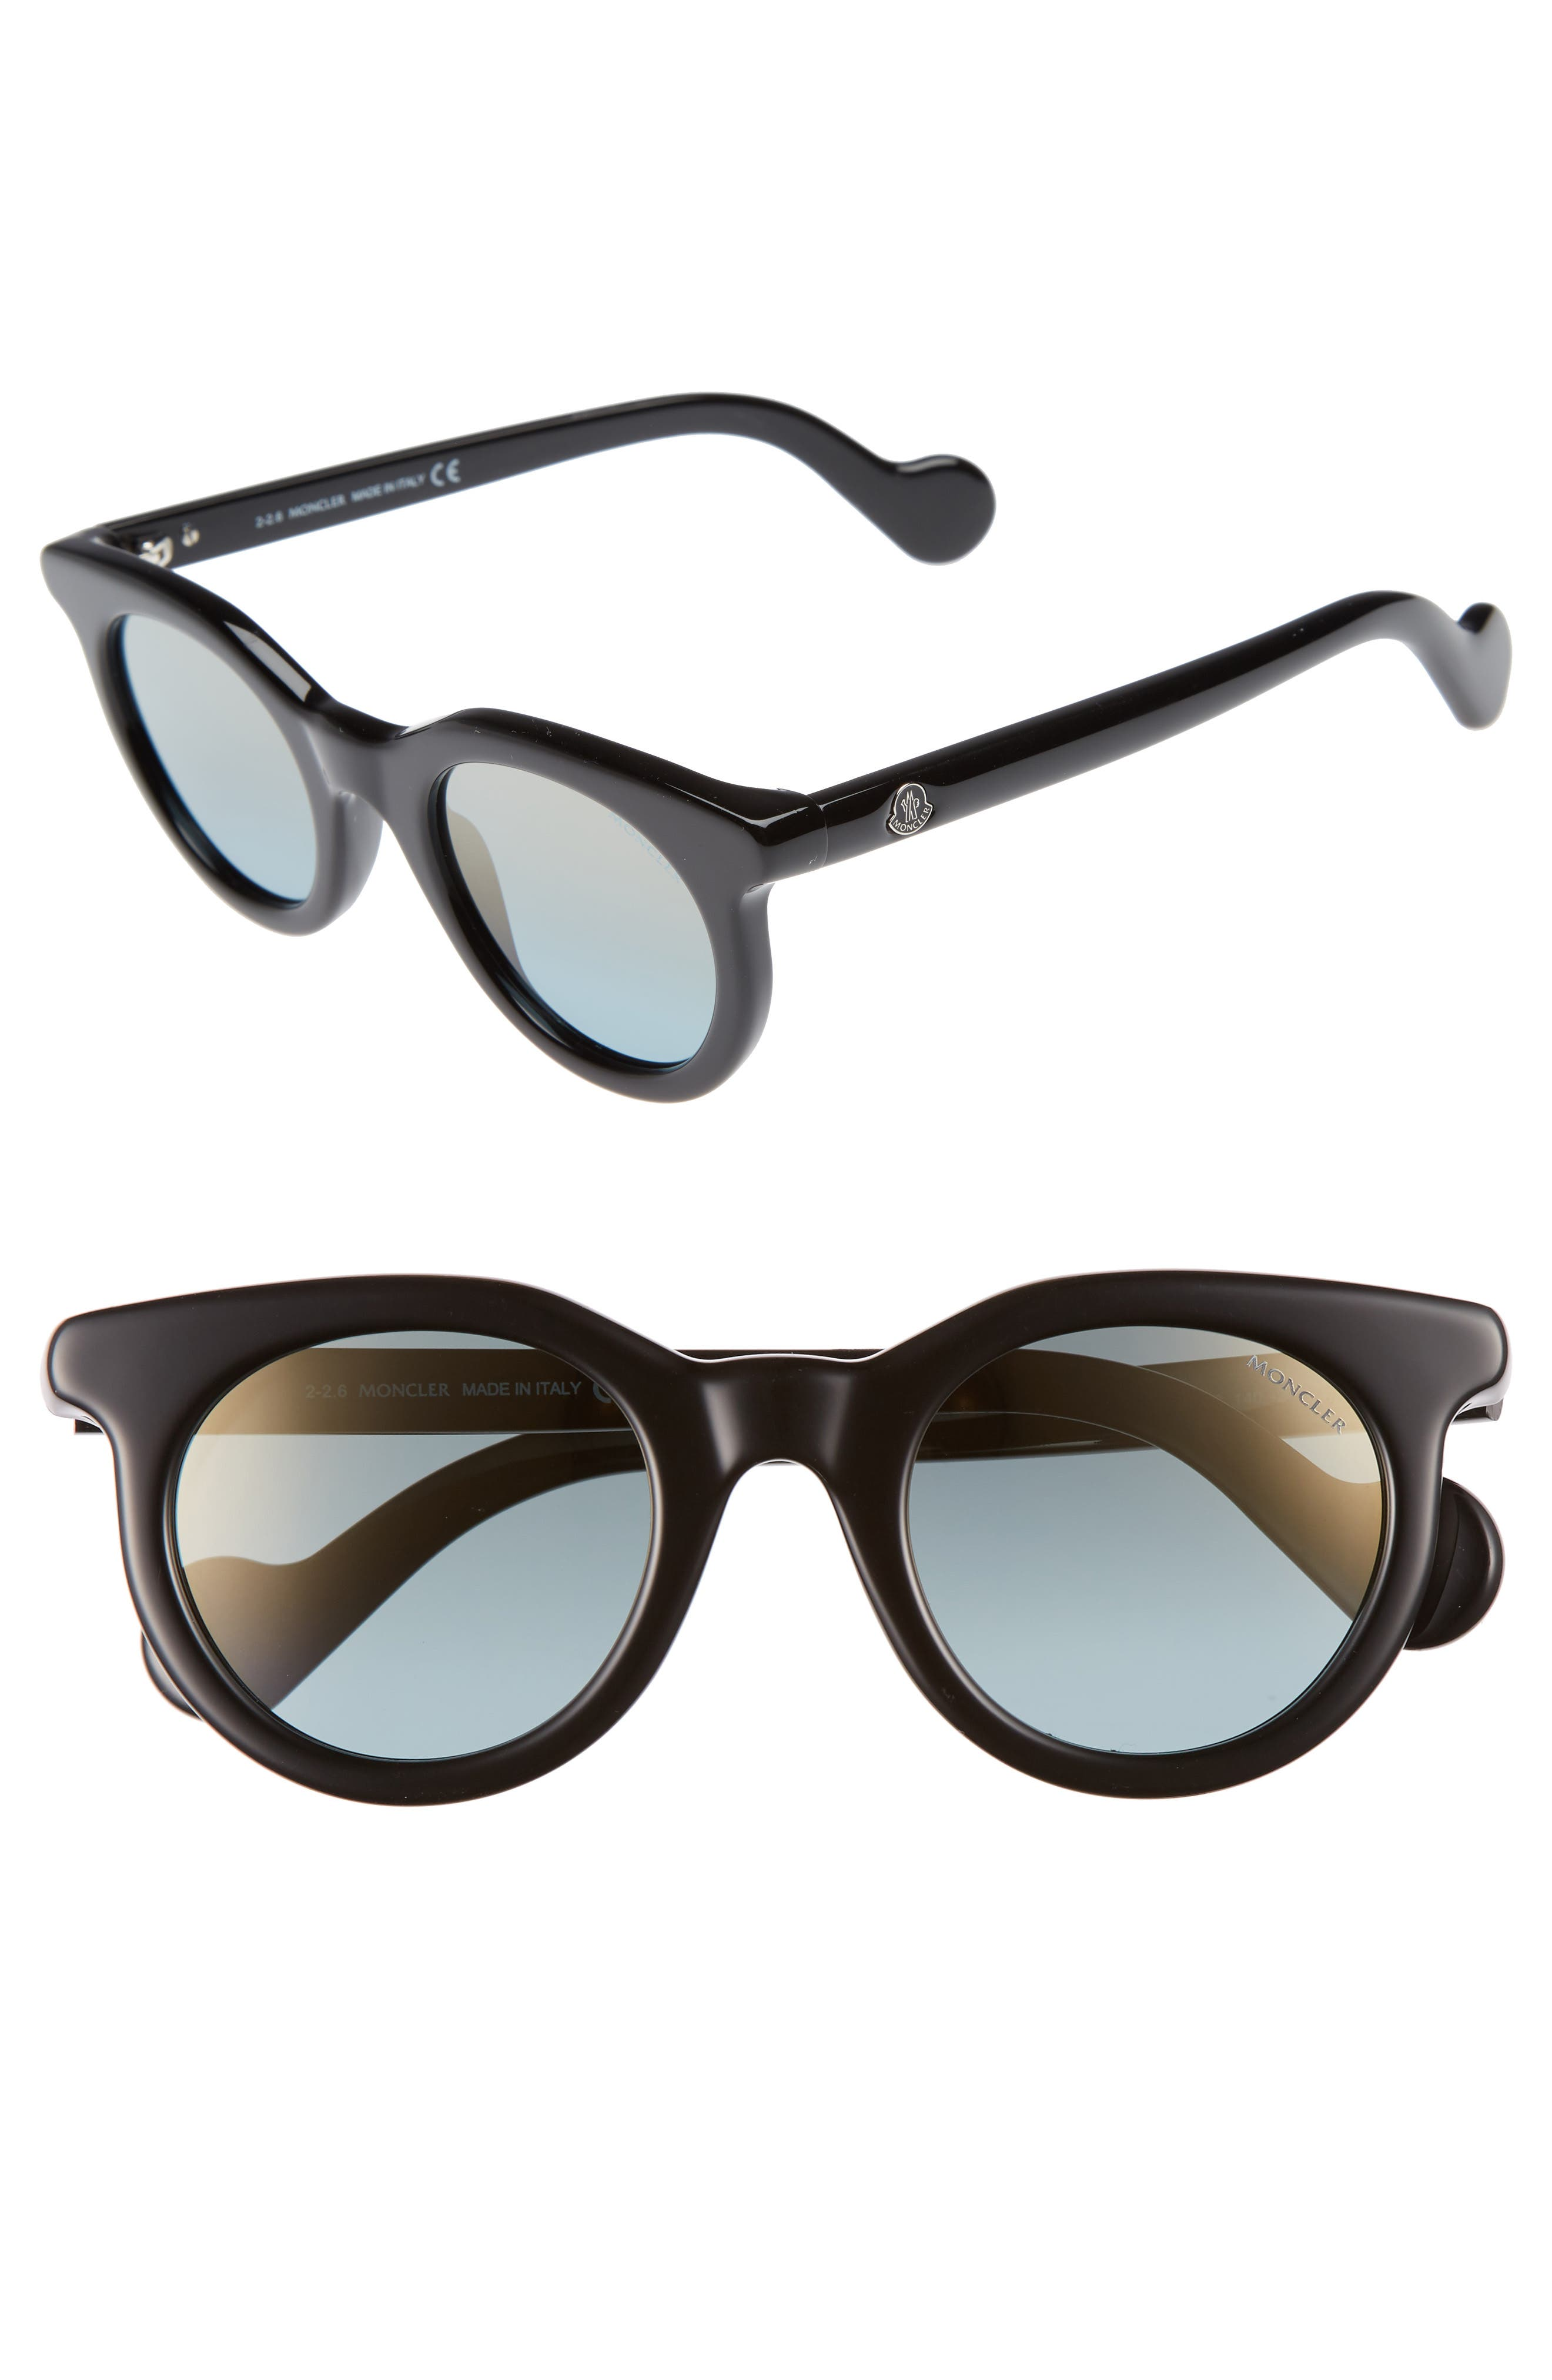 47mm Sunglasses,                             Main thumbnail 1, color,                             Shiny Black/ Blue Mirror